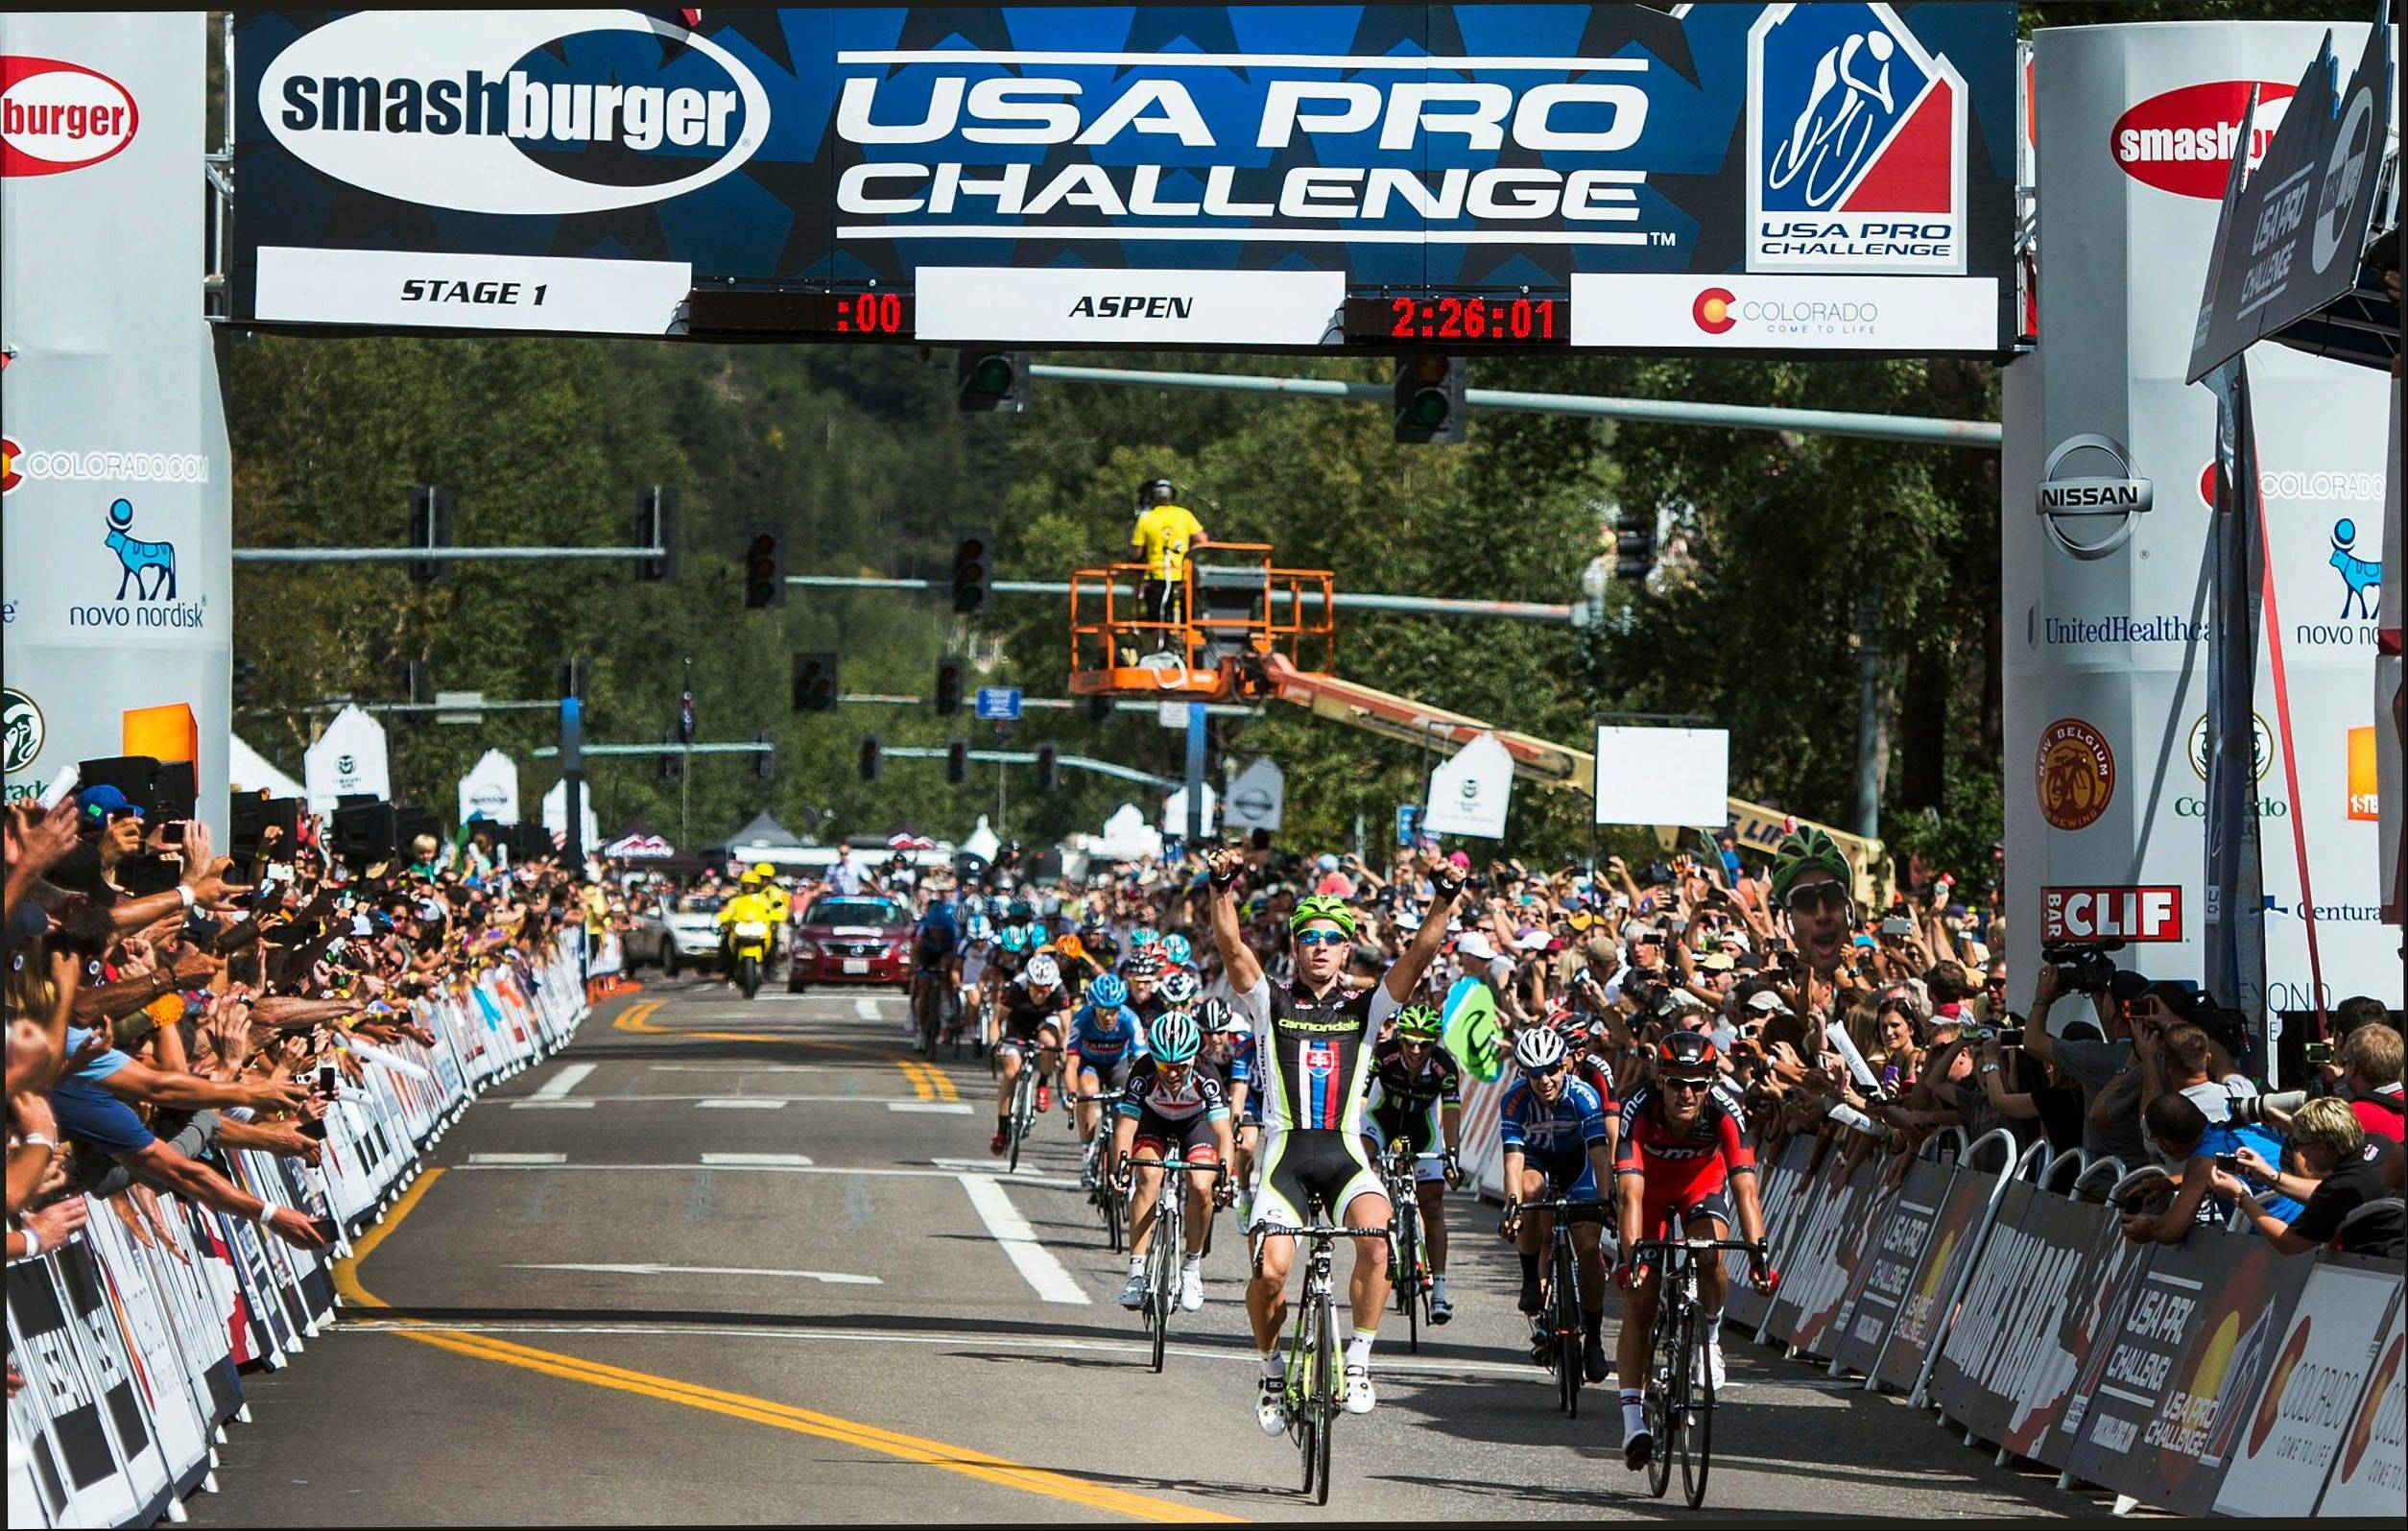 Peter Sagan of Team Cannondale crosses the finish line first in Monday�s opening stage of the USA Pro Challenge in Aspen, Colo.